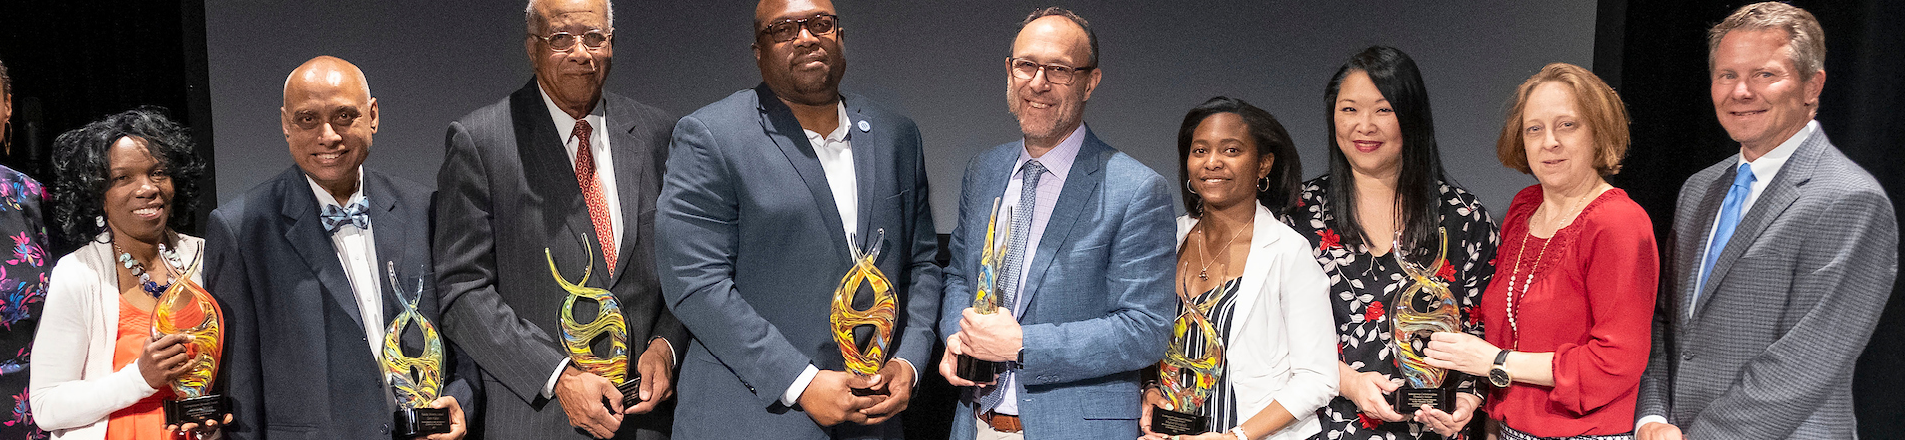 Reed Smith partners recognised as diversity champions